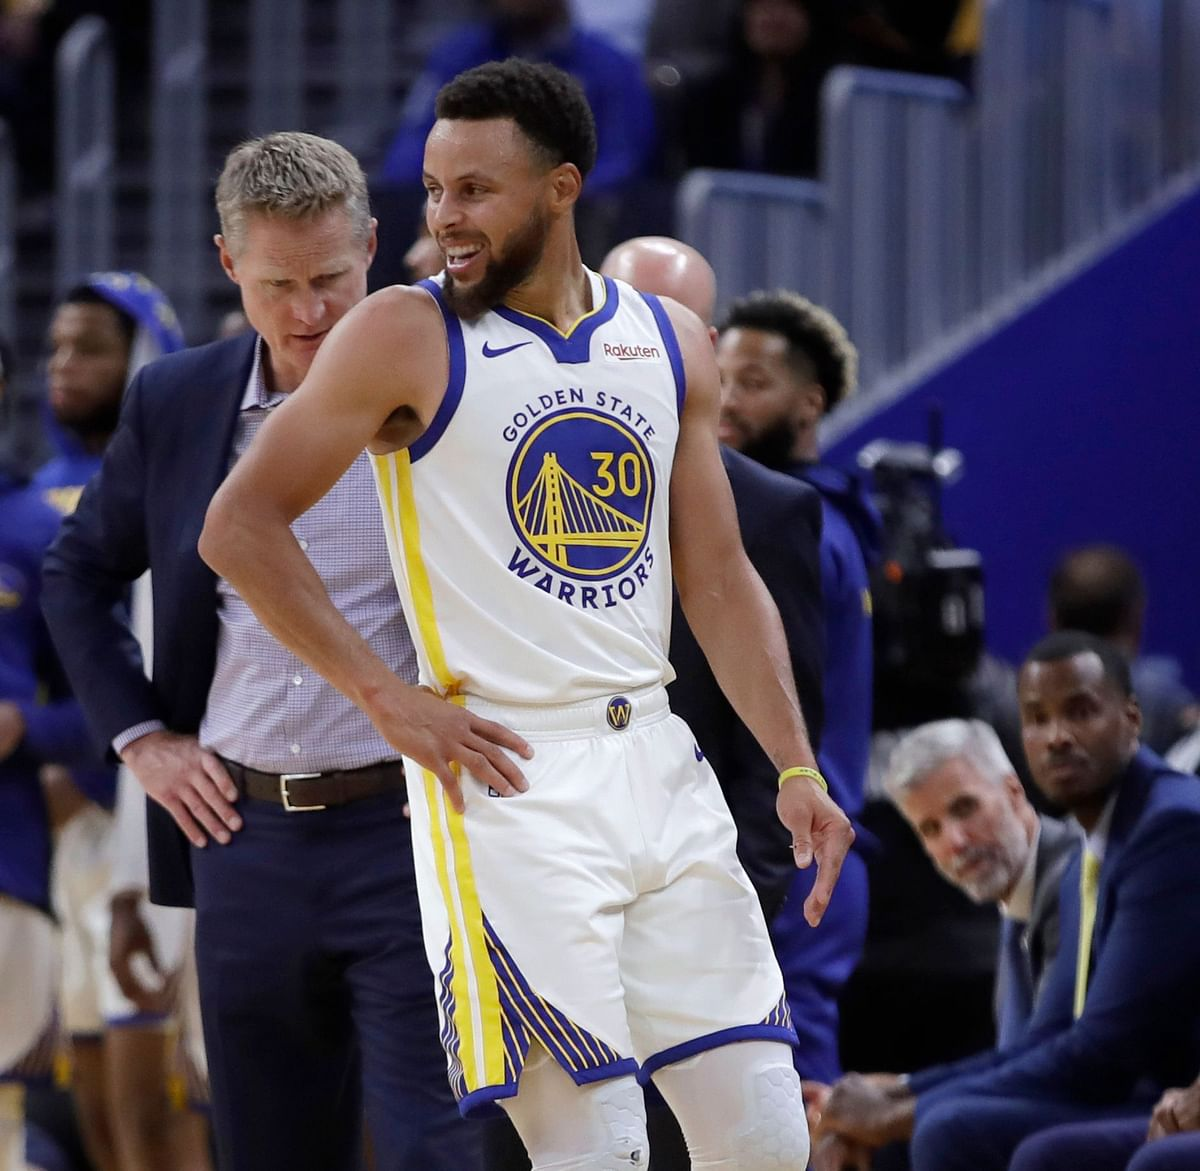 Golden State Warriors coach Steve Kerr, left, observes Stephen Curry (30) after Phoenix Suns' Aron Baynes fell on him during the second half of an NBA basketball game Wednesday, Oct. 30, 2019, in San Francisco. Curry left the game with injury.